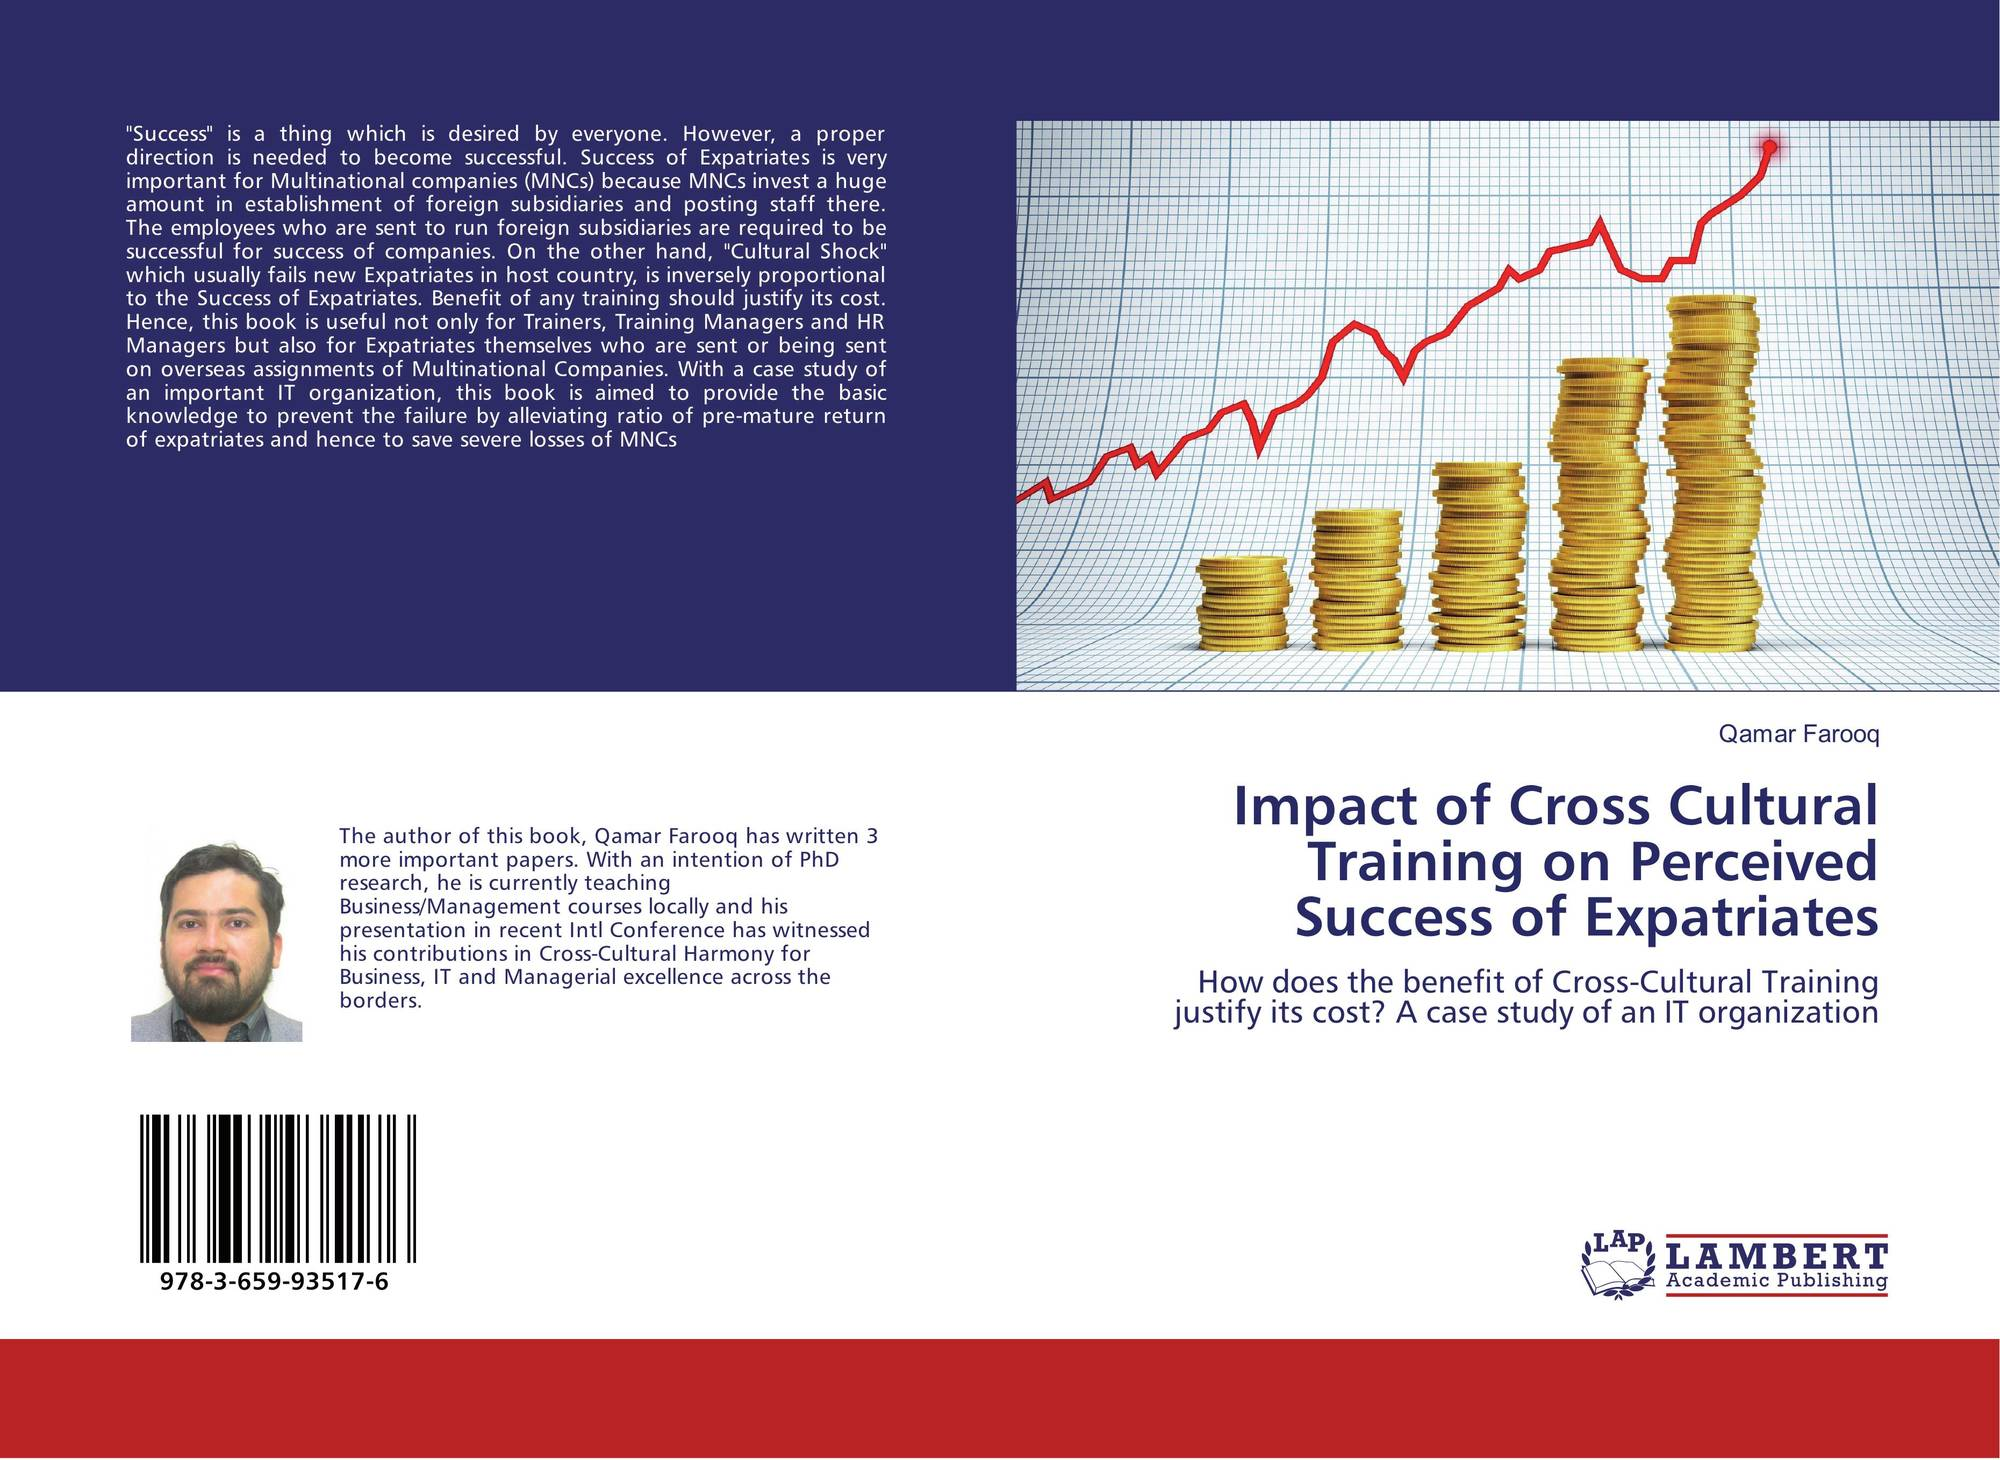 the impact of cross cultural training for The effects of cross-cultural training on expatriate assignments  their impact upon cross-cultural  of cross-cultural training on overseas assignments is not.